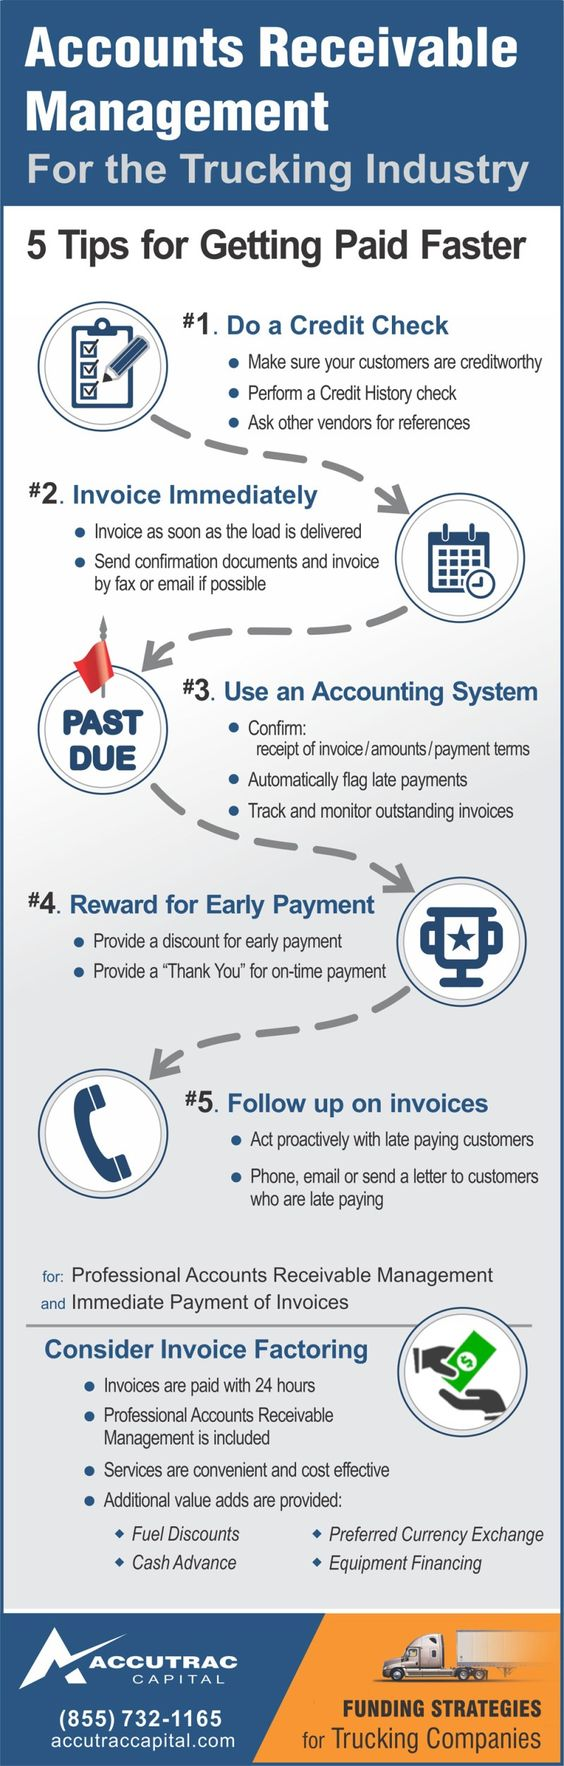 How To Create Your Own Invoice Pdf How Invoice Factoring Works  Accounts Receivable Factoring  What Is Proforma Invoice Word with Sample House Rent Receipt Excel How Invoice Factoring Works  Accounts Receivable Factoring  Pinterest   Factors Internal Control For Cash Receipts